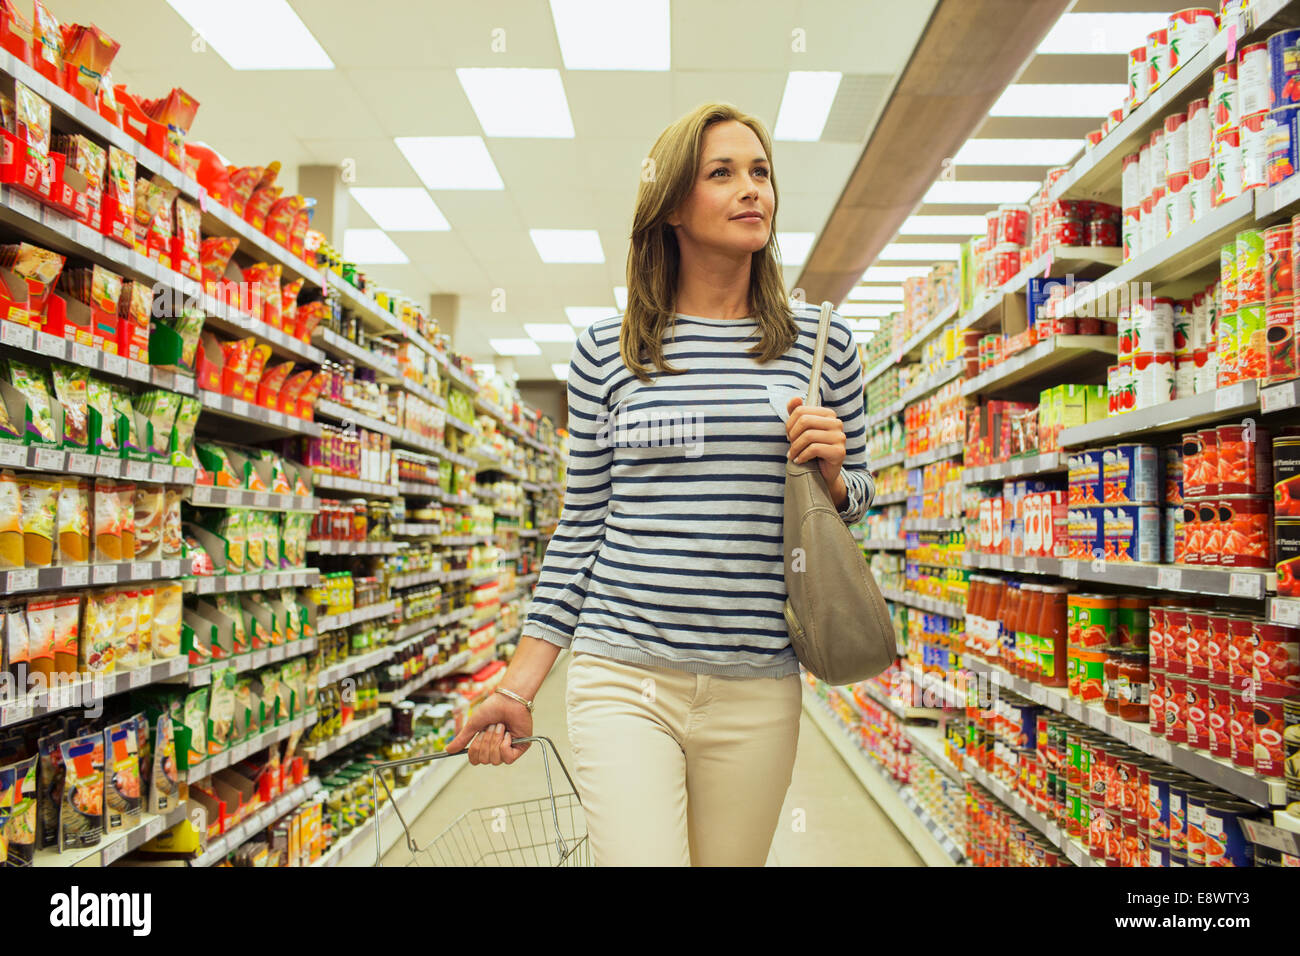 customers shopping at a grocery store - 1236×695